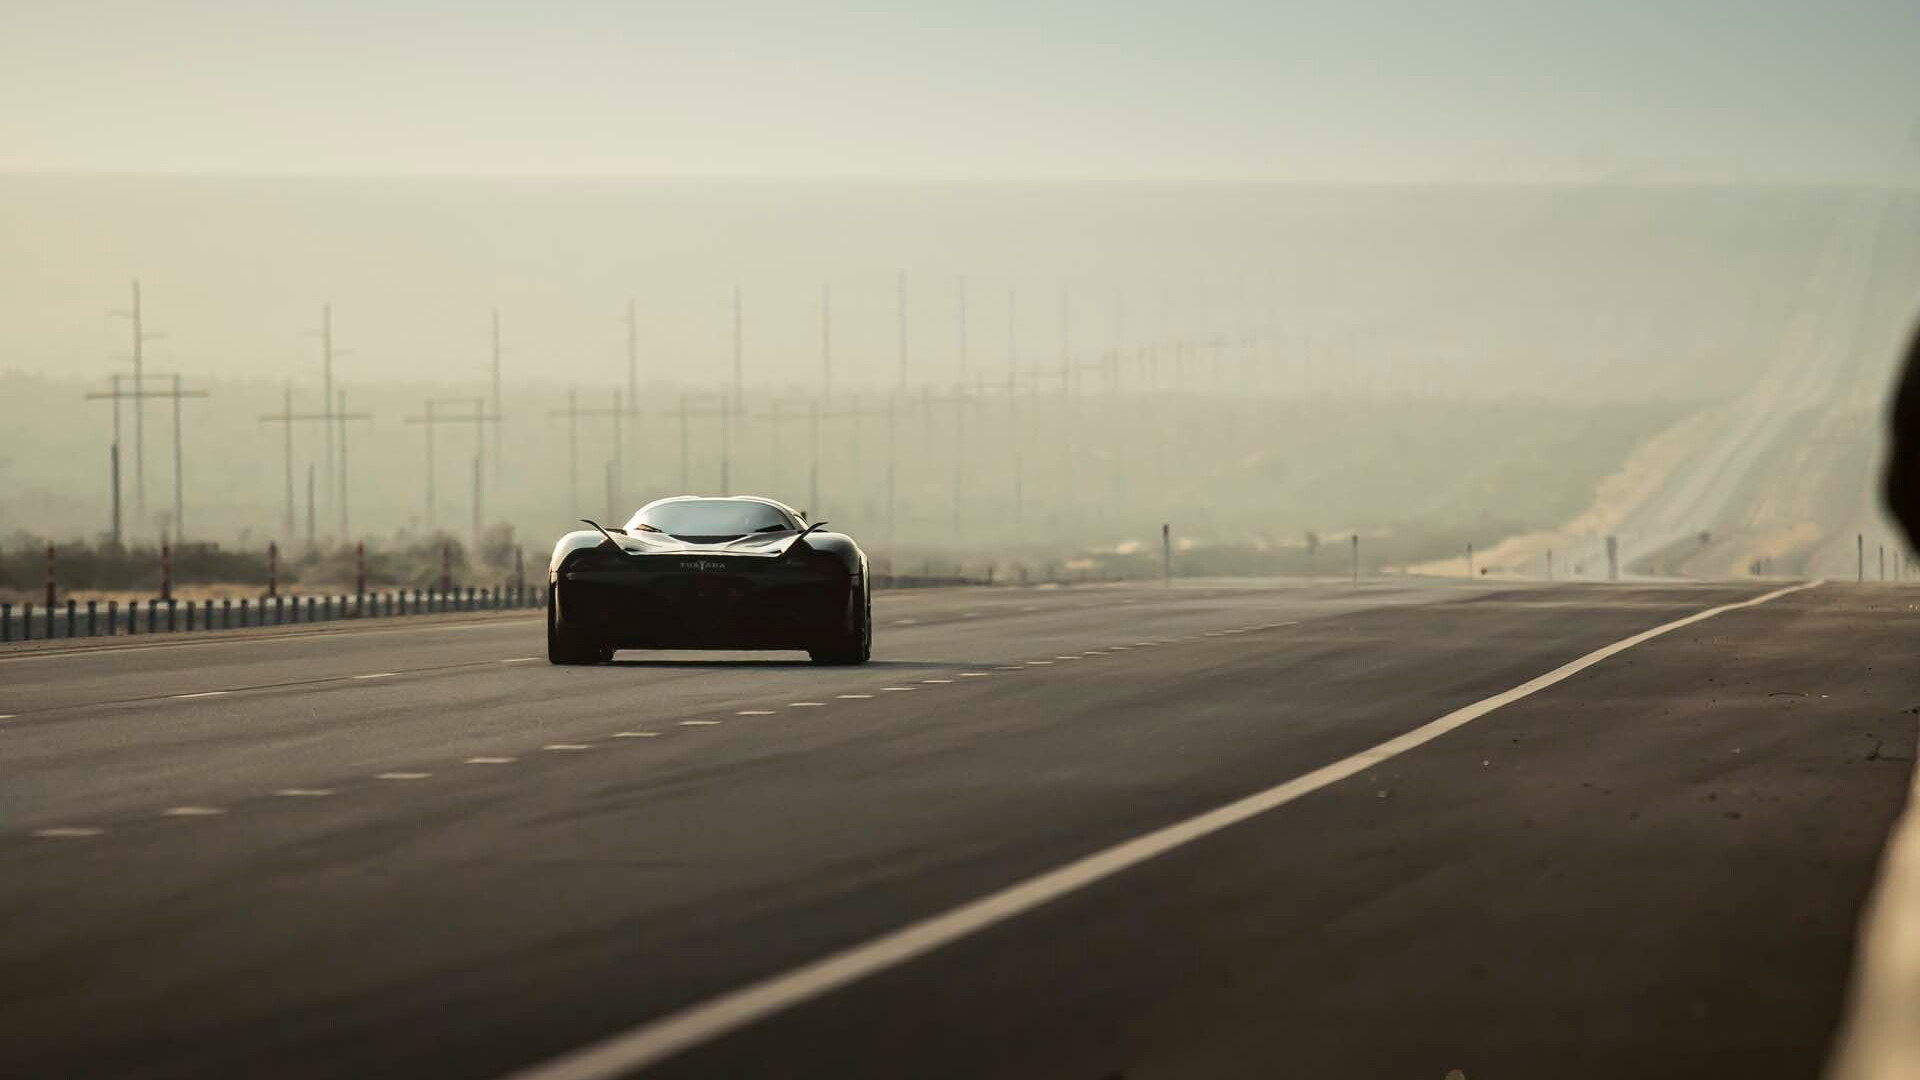 SSC Tuatara record run